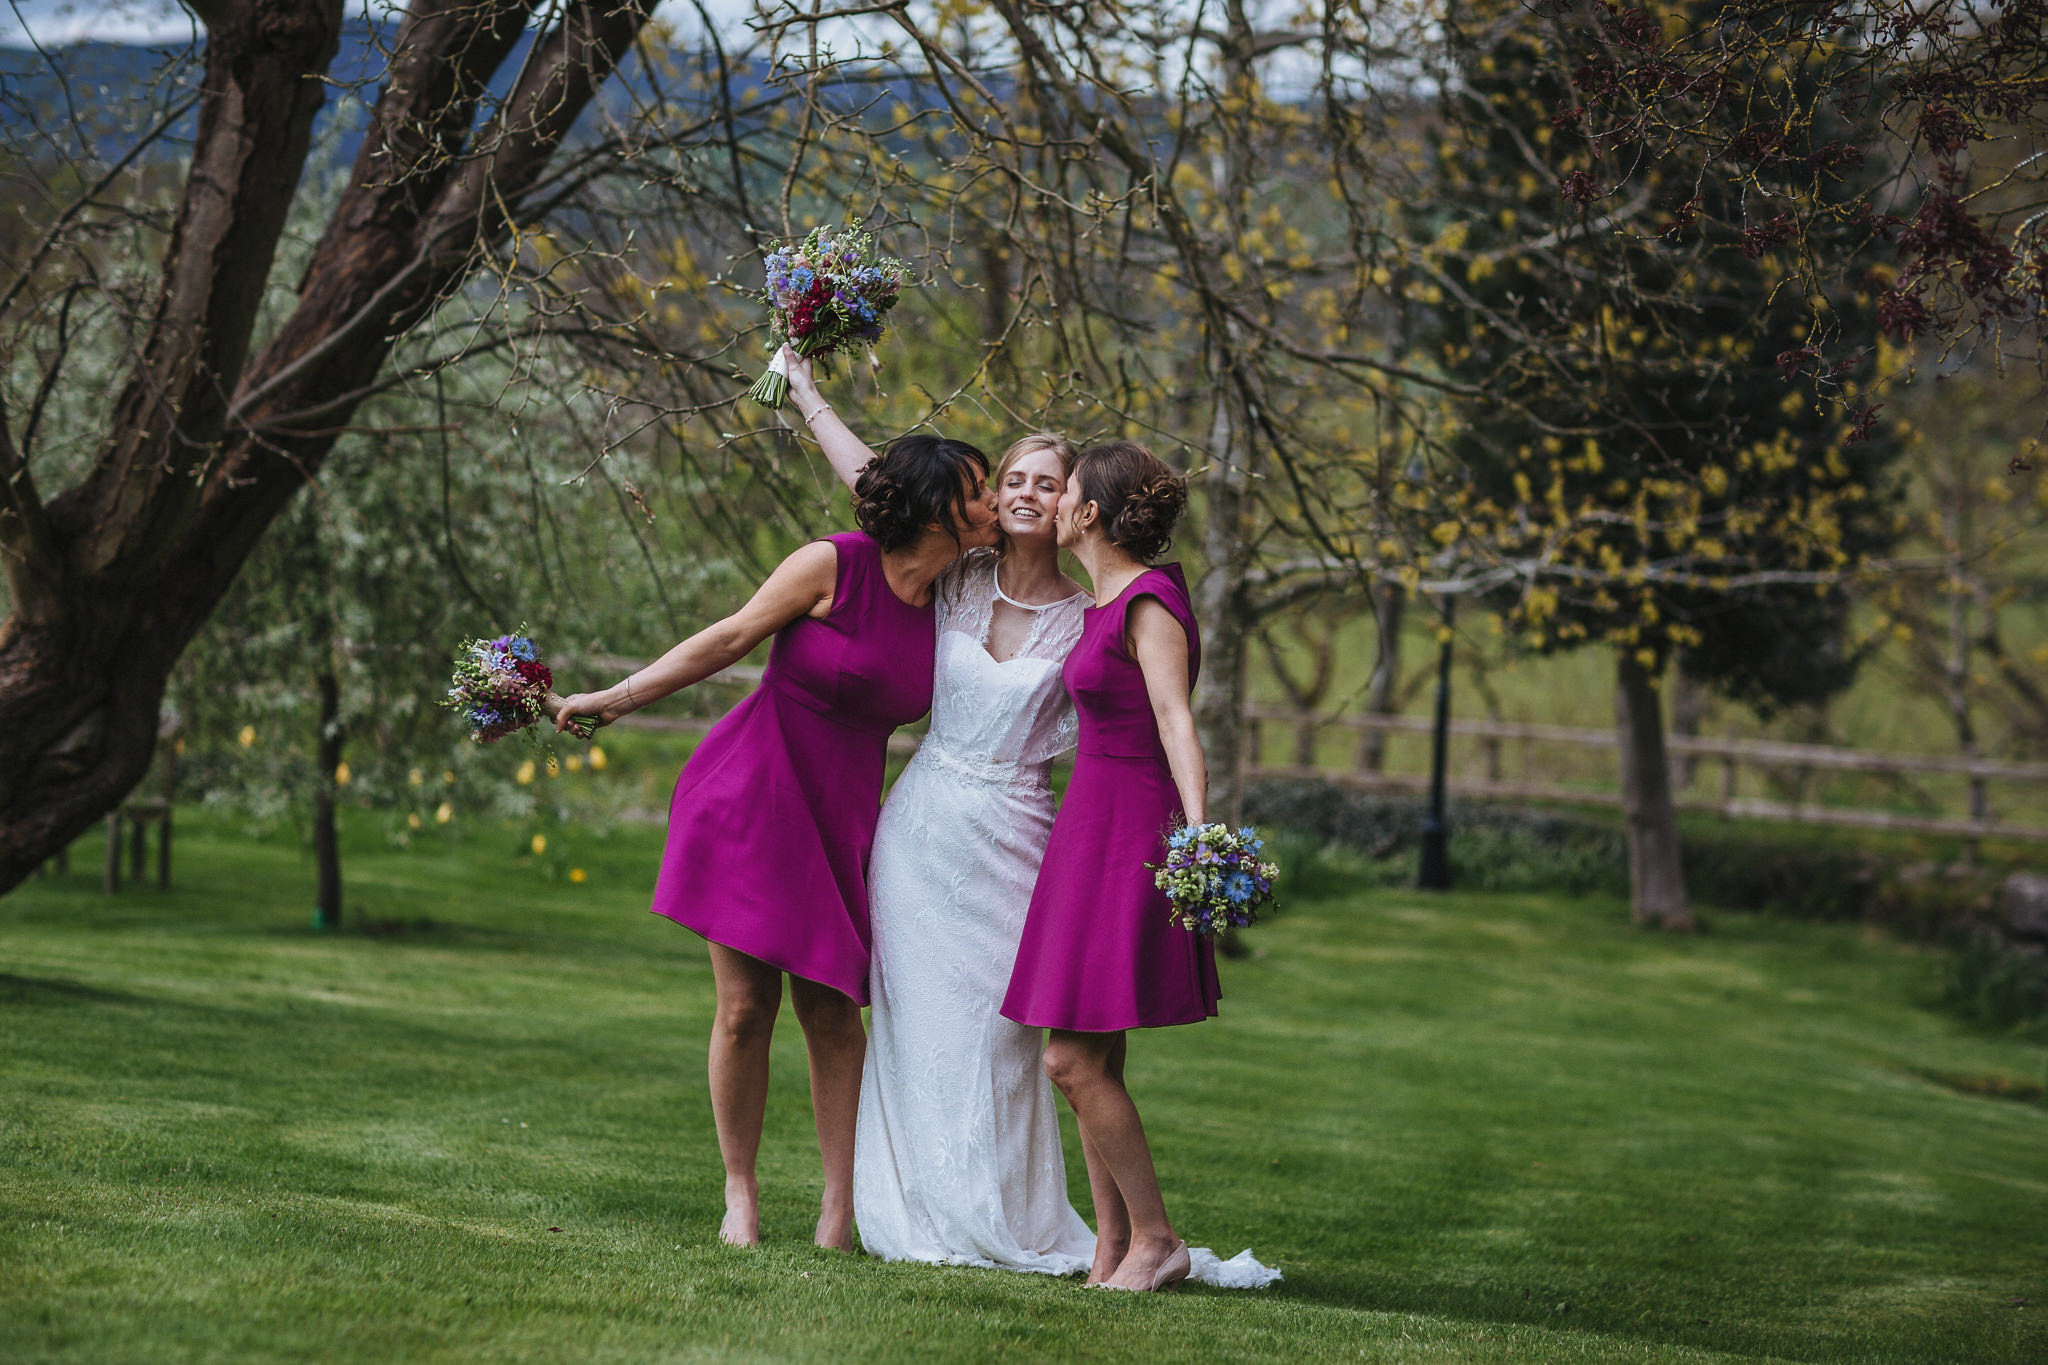 plas-isaf-corwen-north wales wedding-photography-photographer-91054